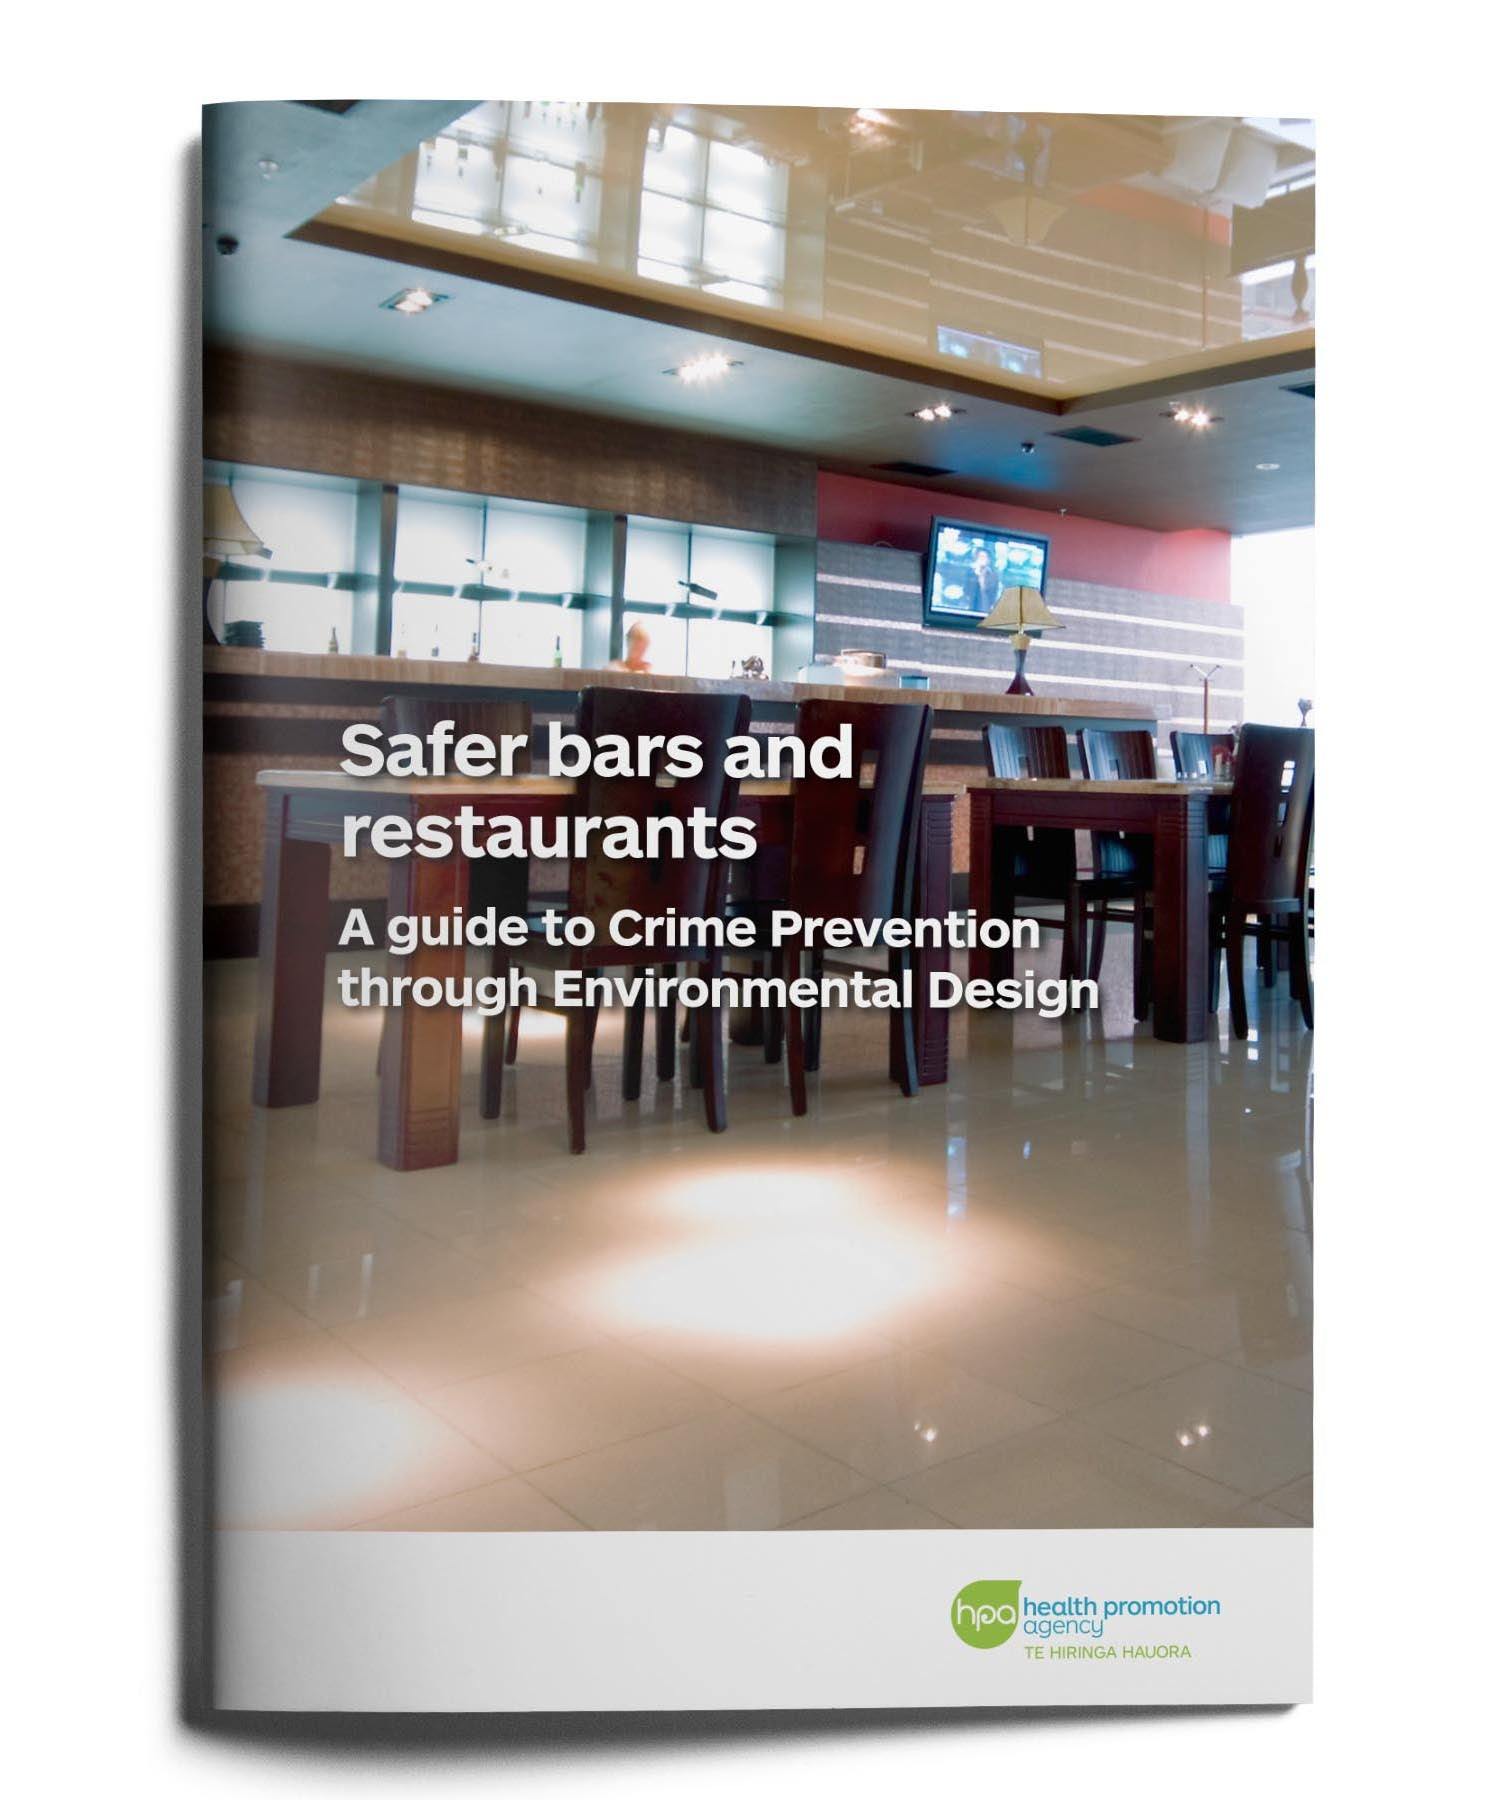 Safer bars and restaurants - A guide to Crime Prevention through Environmental Design